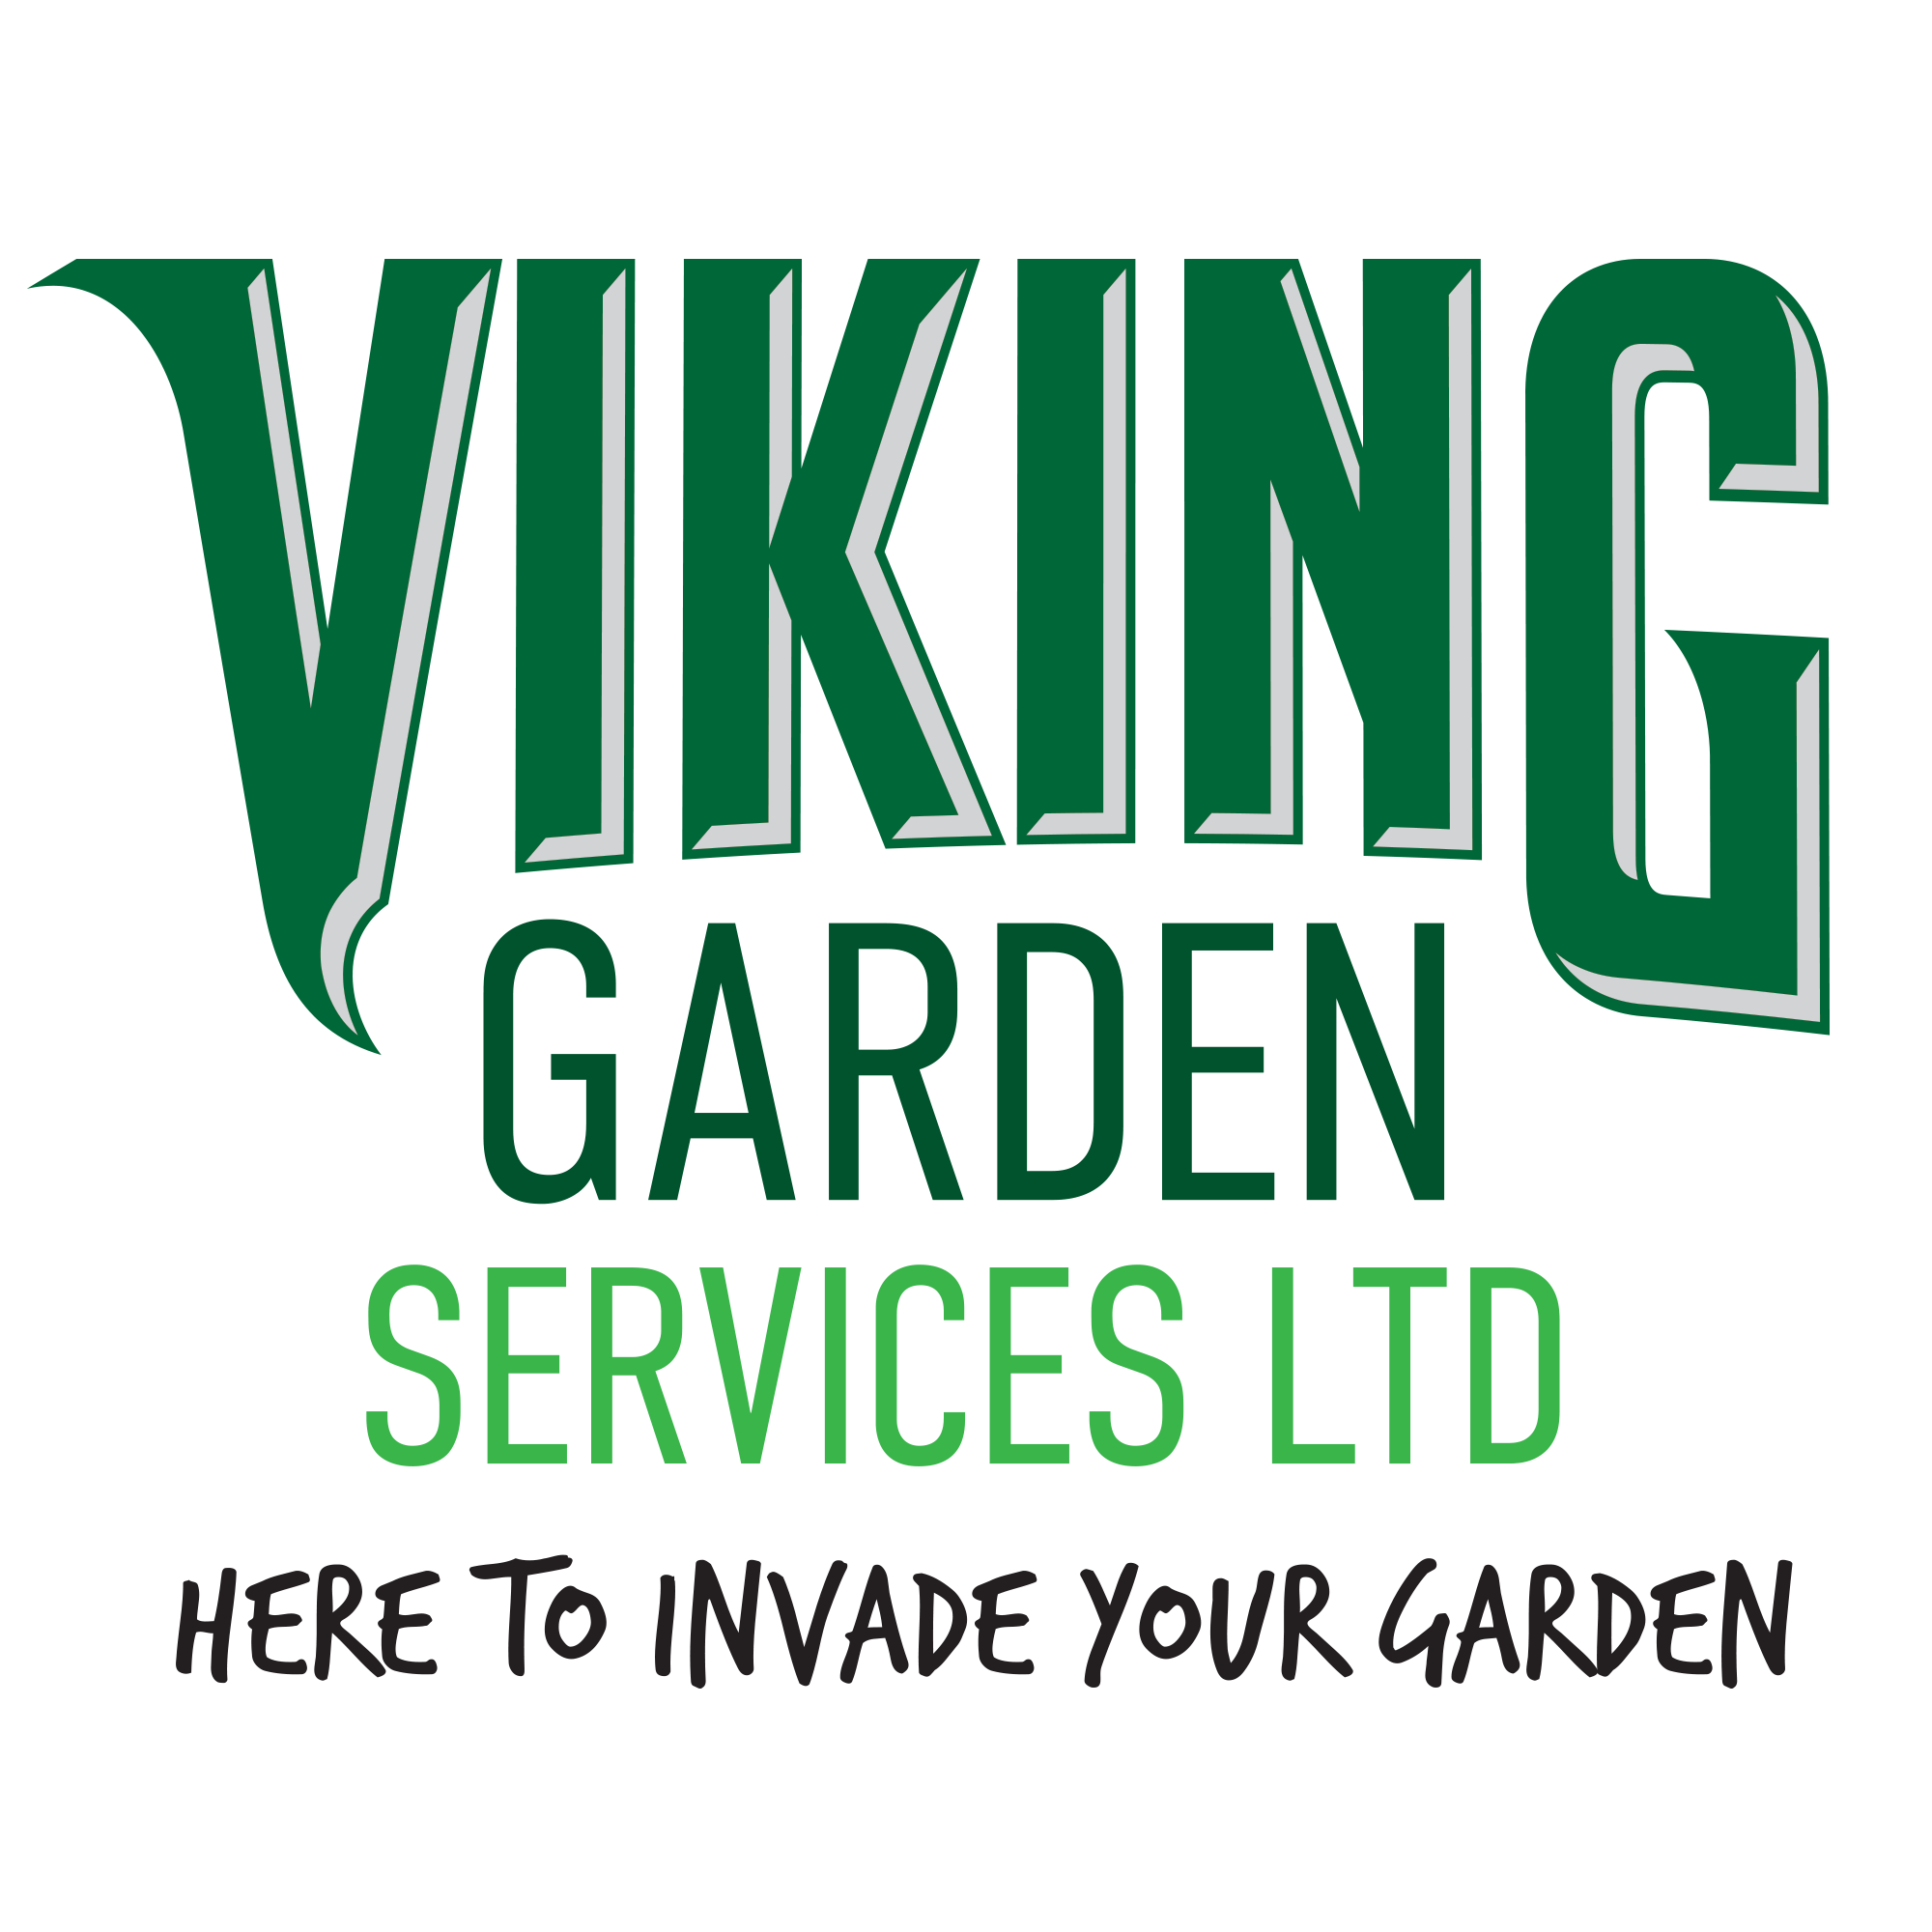 Garden maintenance viking garden services ltd for Gardening services